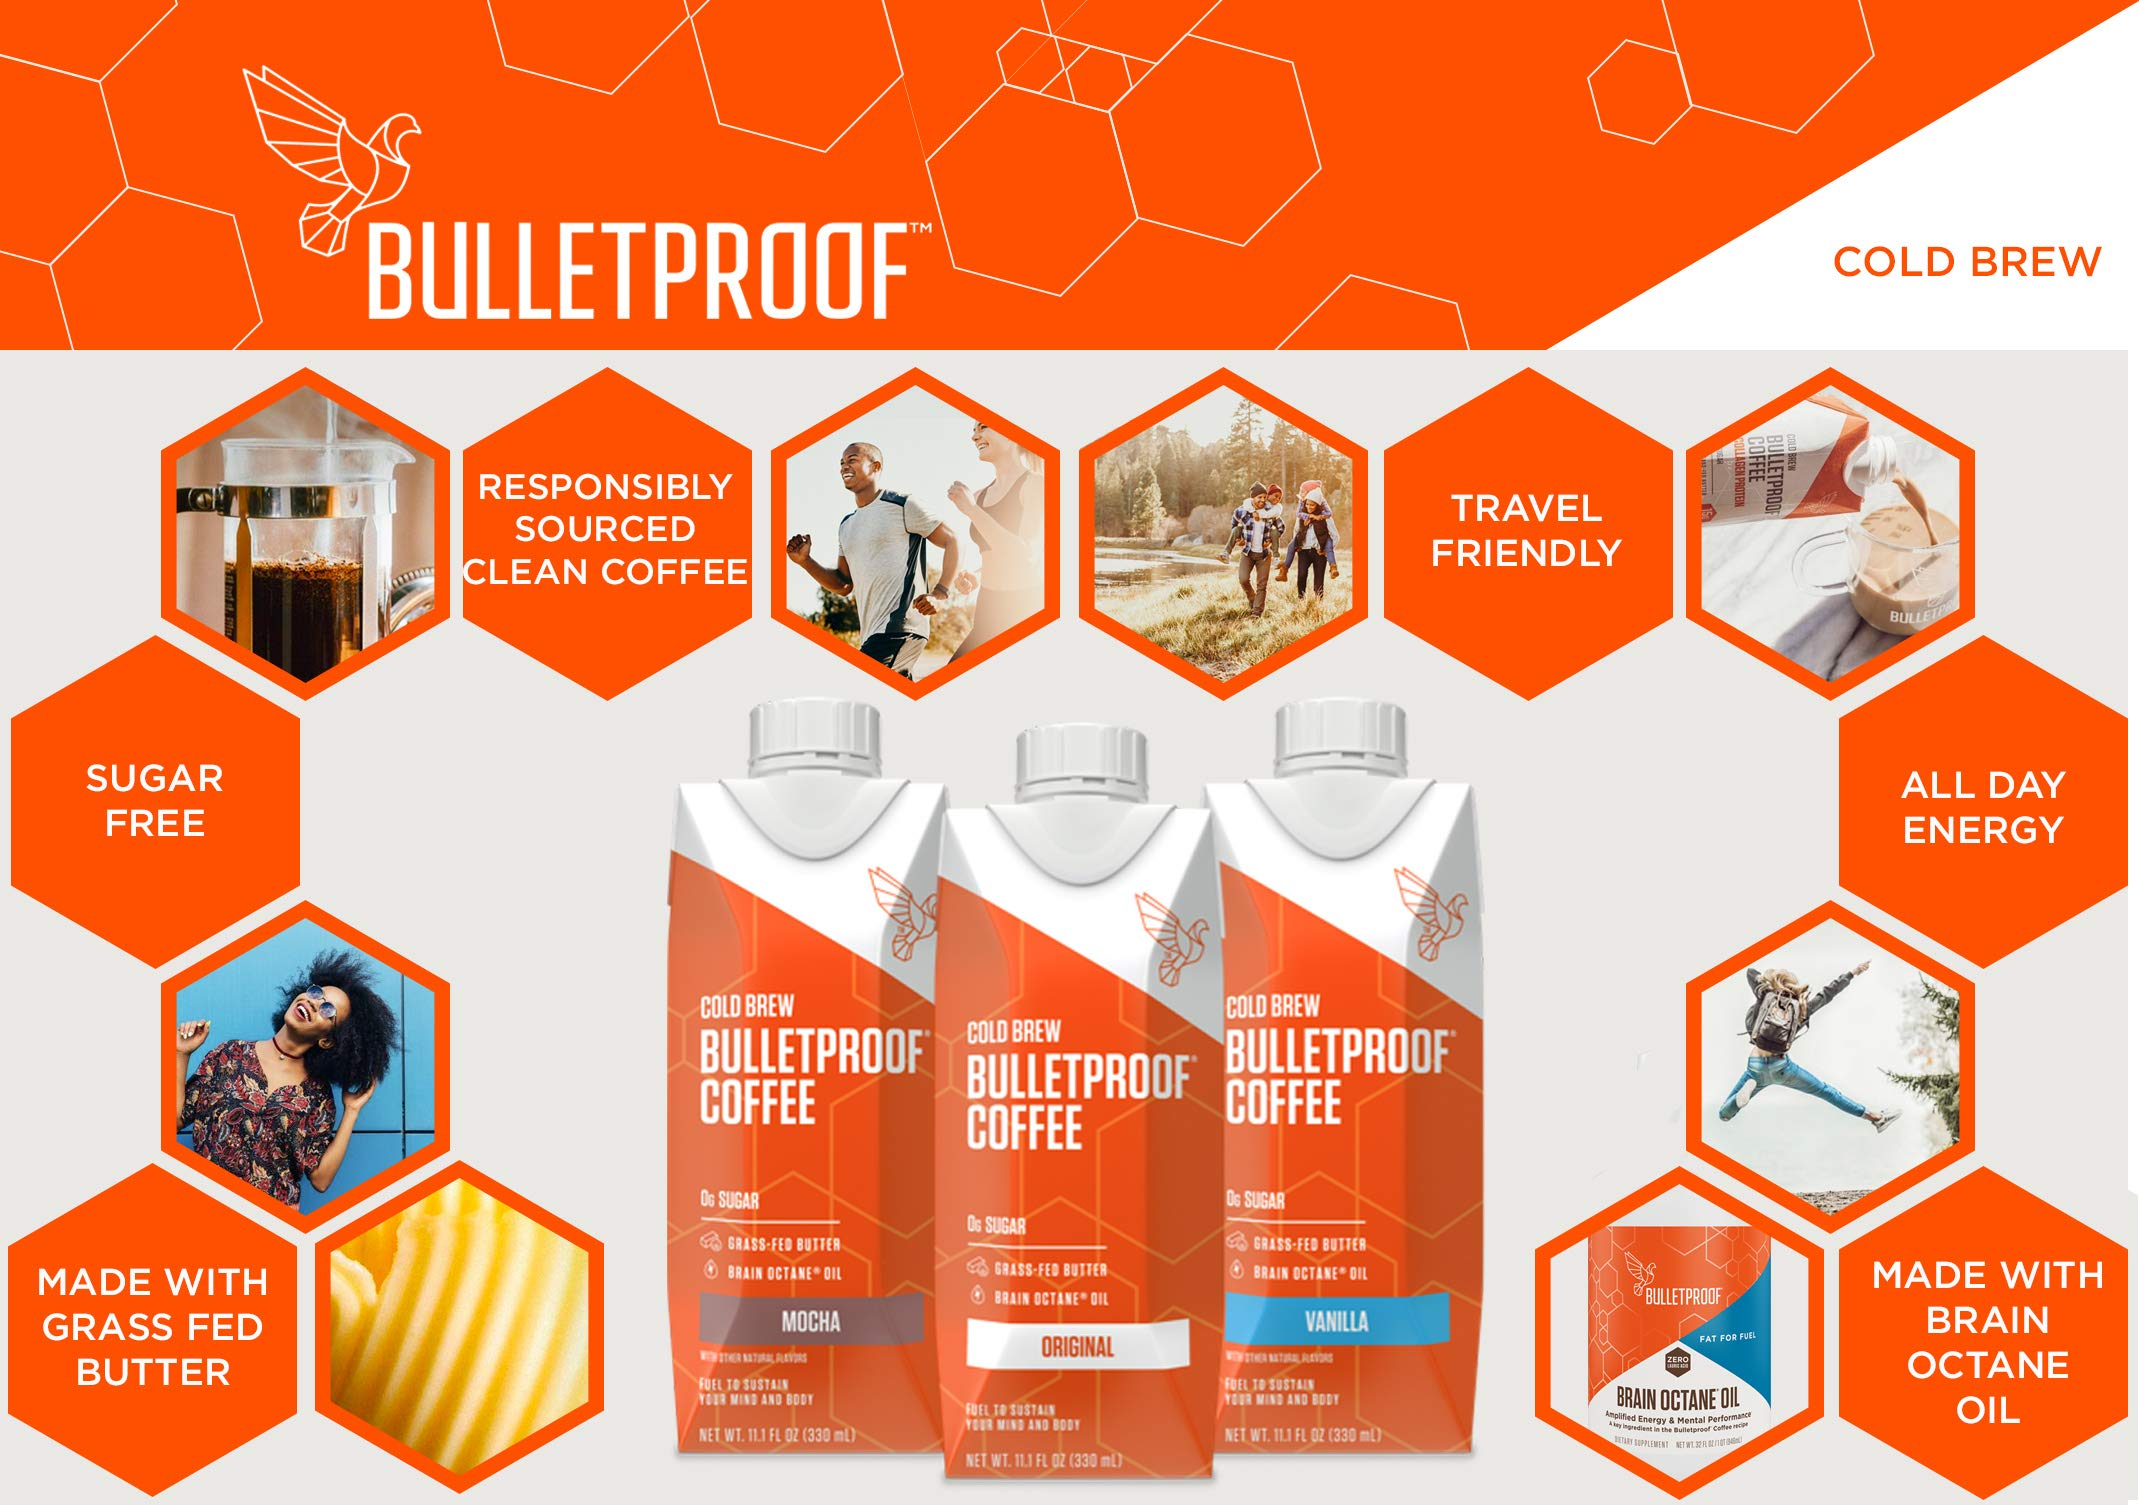 Bulletproof Cold Brew Coffee, Keto Friendly, Sugar Free, with Brain Octane oil and Grass-fed Butter, (Mocha) (12 Pack) by Bulletproof (Image #4)